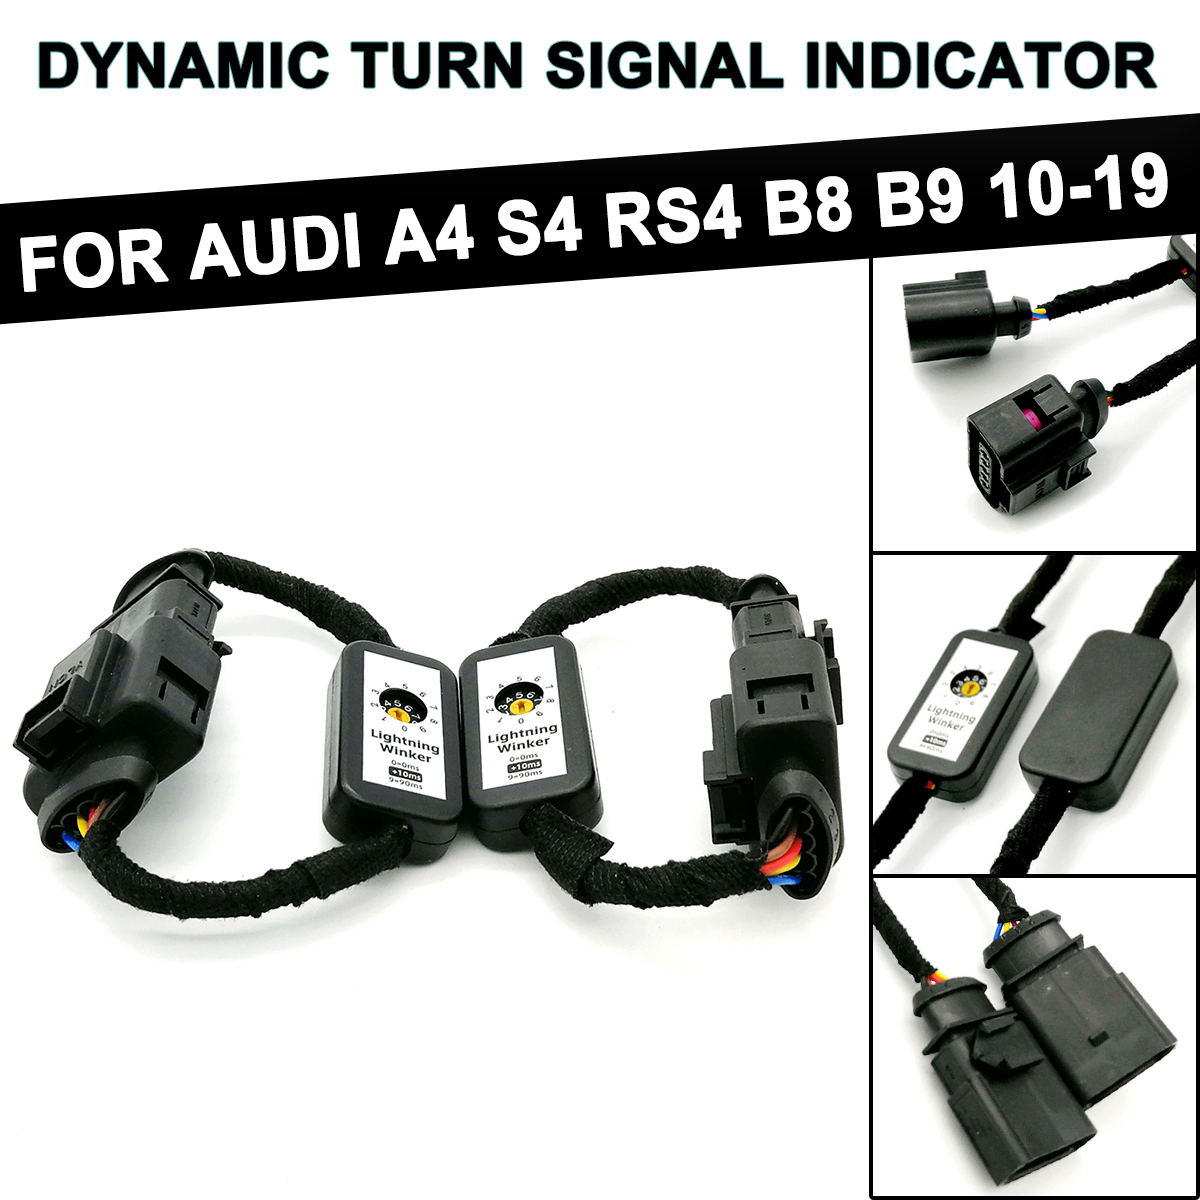 2pcs Dynamic Turn Signal LED Taillight For Audi A4 S4 RS4 B8 B9 2010-2019 Add-on Module Wire Indicator Left & Right Tail Light